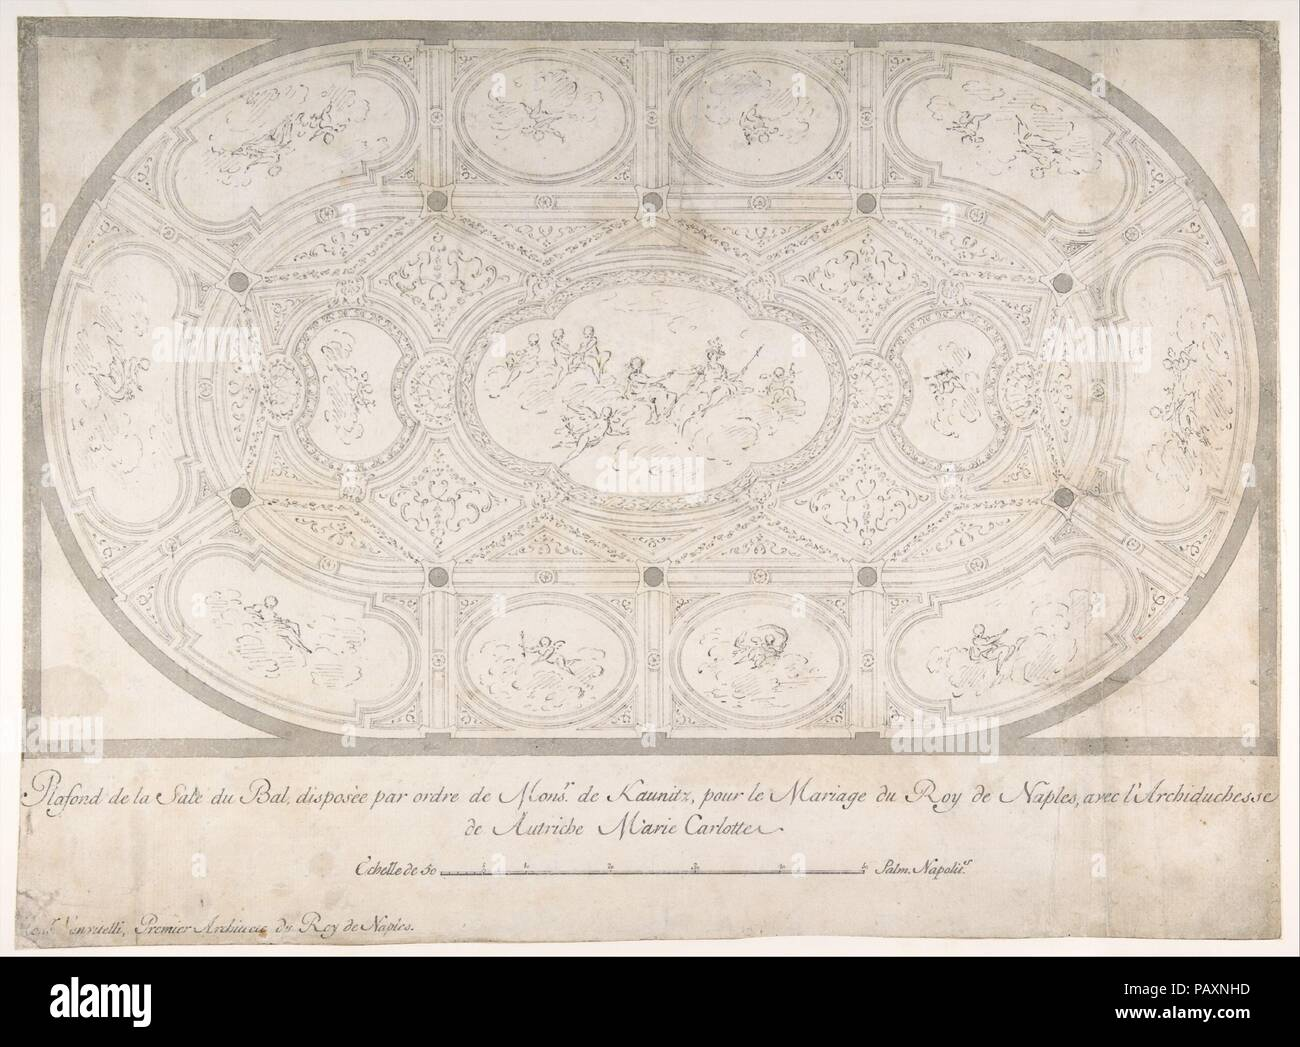 Ceiling of Ballroom decorated for the Marriage of the King of Naples to the Archduchess of Austria. Artist: Luigi Vanvitelli (Italian, Naples 1700-1773 Caserta) , workshop of. Dimensions: 13-3/16 x 18-1/16 in.  (33.5 x 45.8 cm). Date: 1700-1773. Museum: Metropolitan Museum of Art, New York, USA. Stock Photo